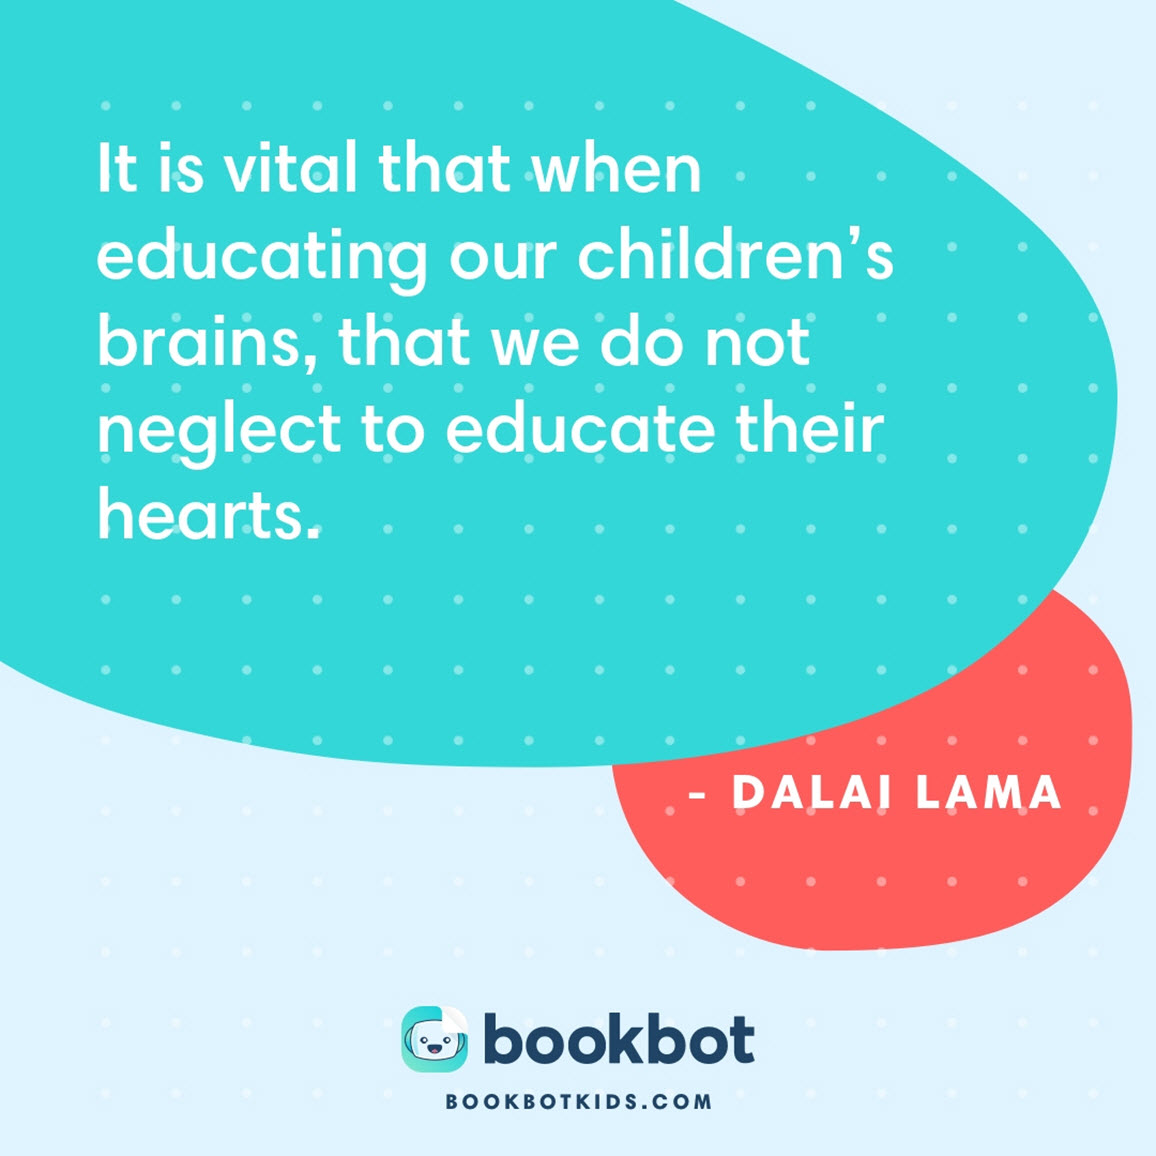 It is vital that when educating our children's brains, that we do not neglect to educate their hearts. – Dalai Lama